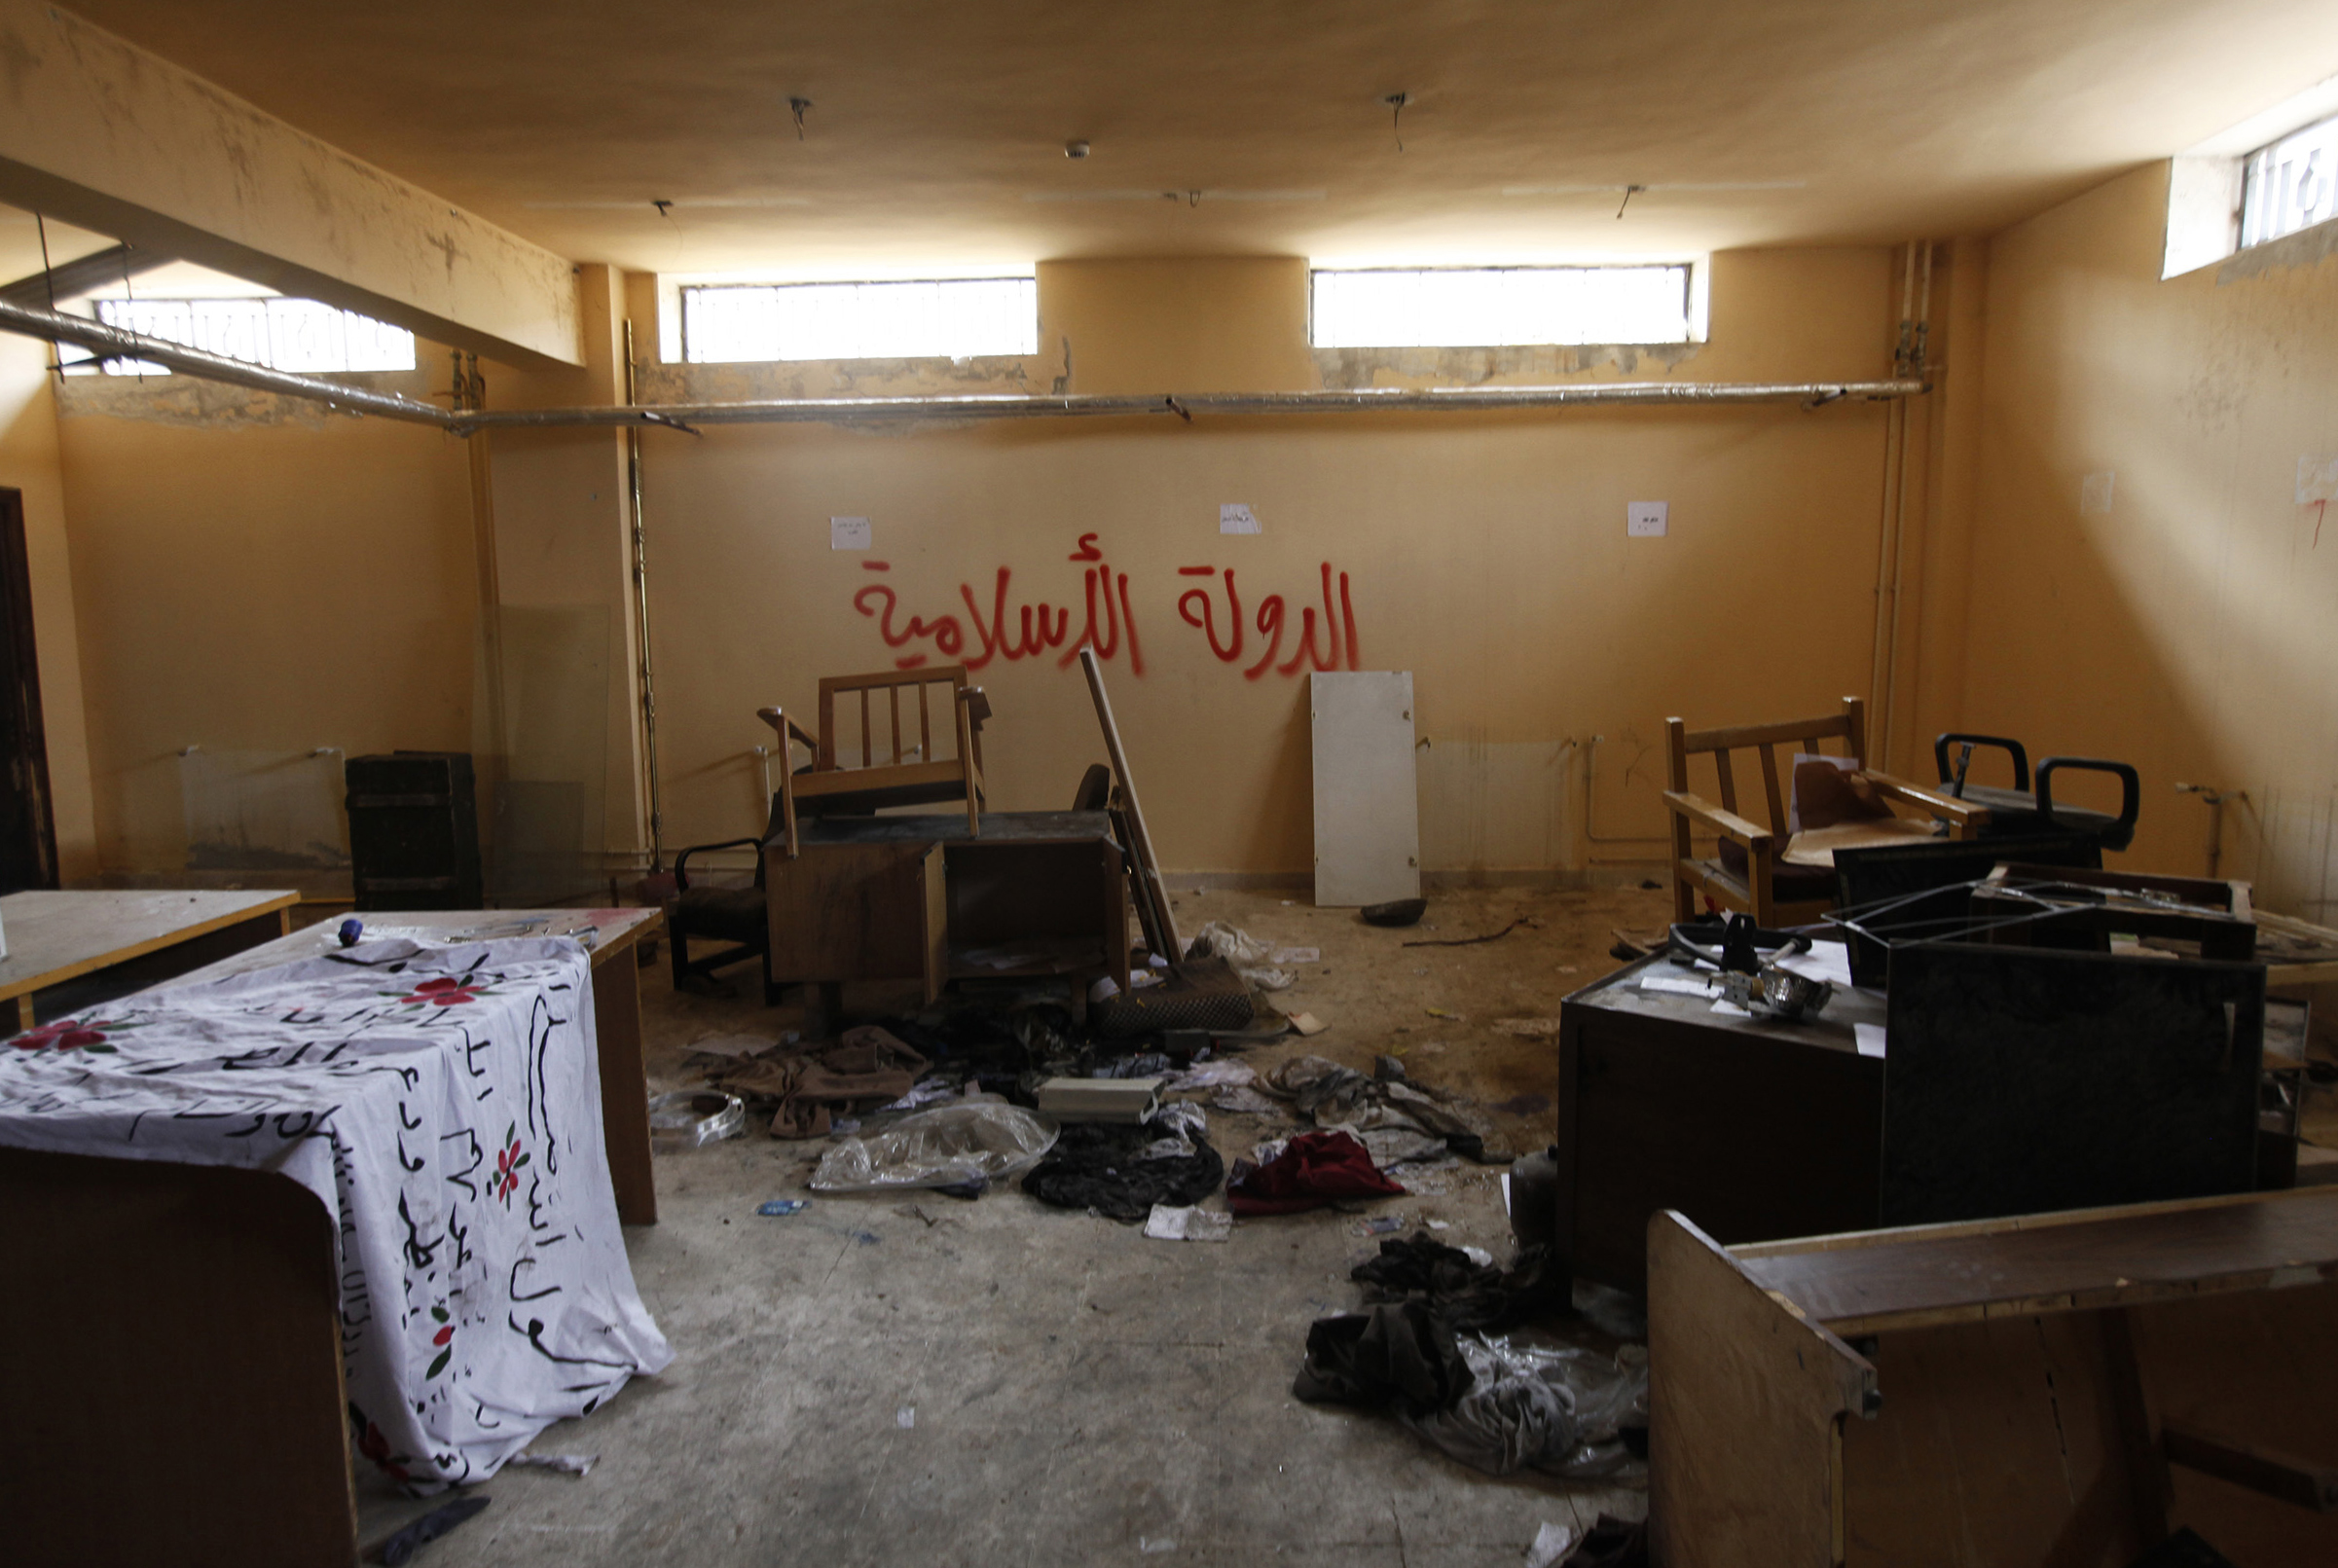 Damage is seen inside a former base used by fighters from the Islamic State in Iraq and the Levant (ISIL), after they withdrew from the town of Azaz, near the Syrian-Turkish border